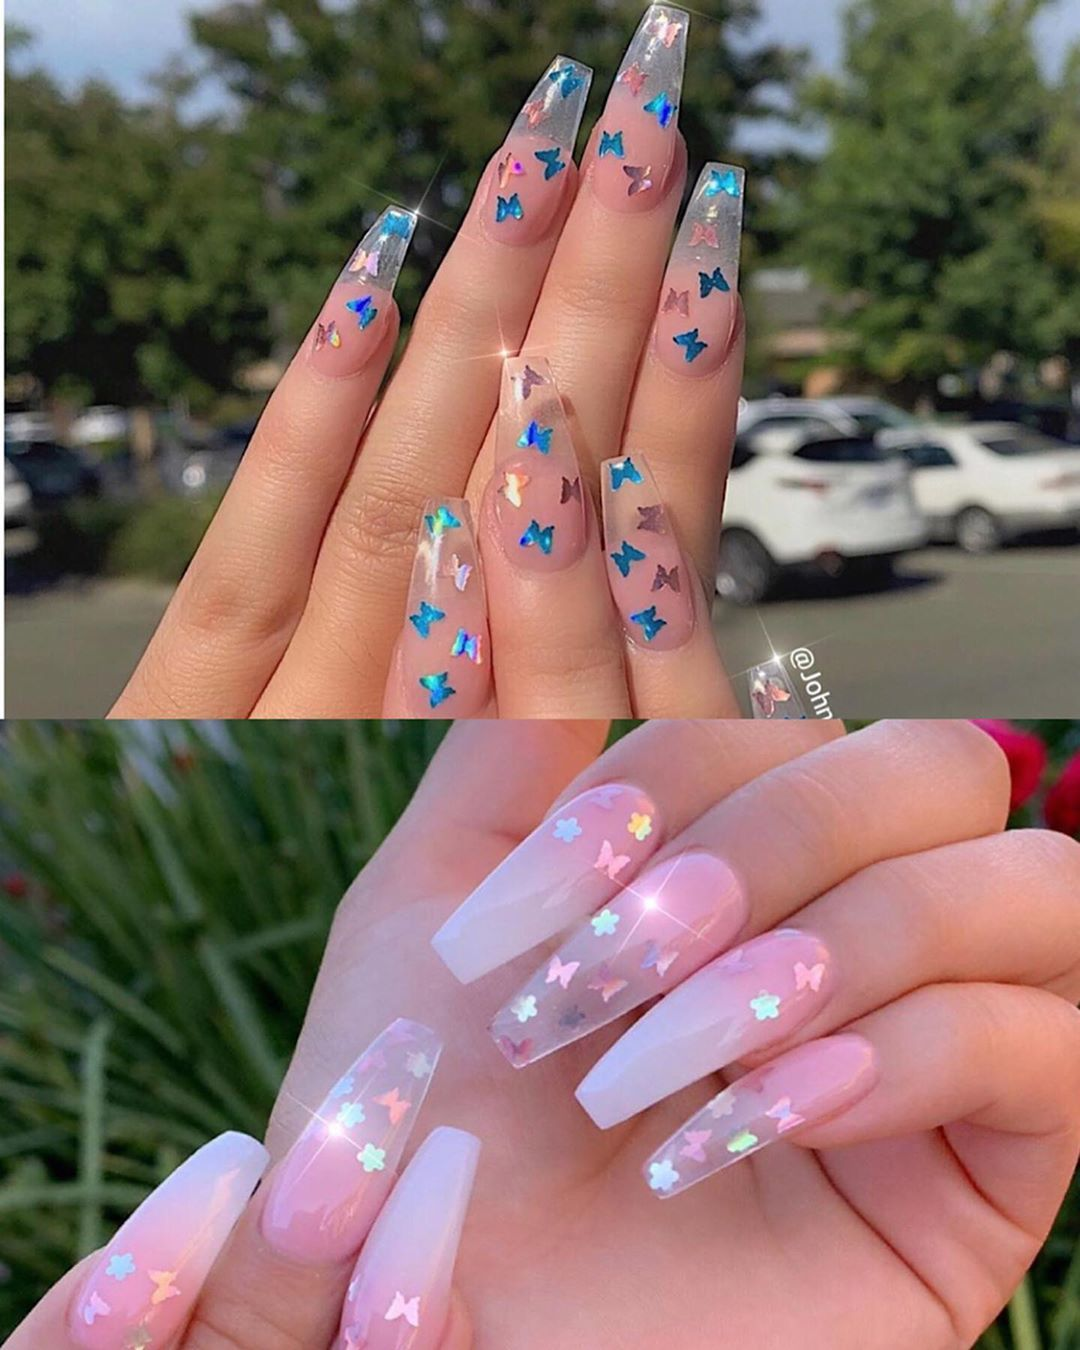 Pin By Ahtiana On Nails With Images Pink Acrylic Nails Ombre Acrylic Nails Summer Acrylic Nails